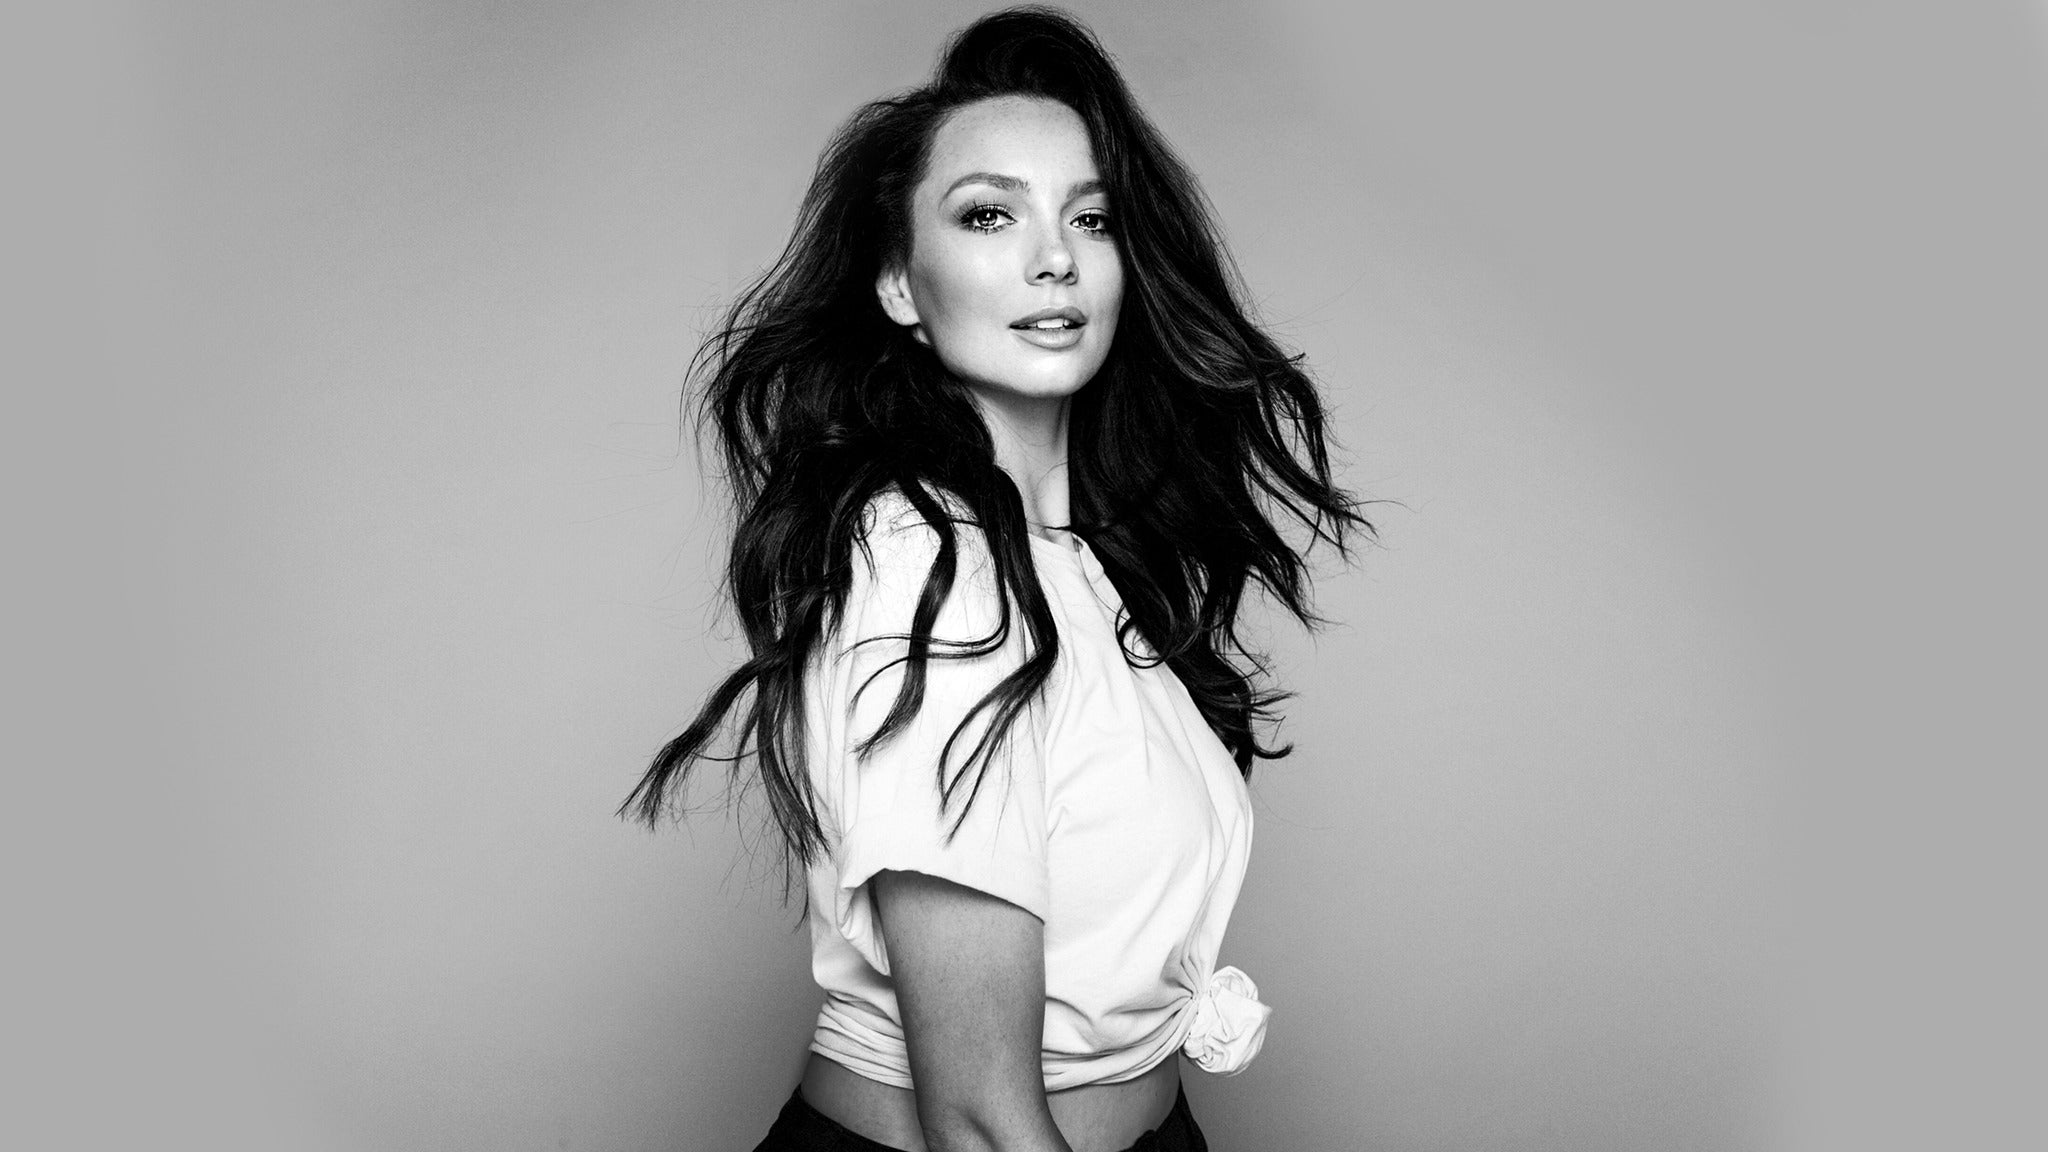 Ricki-Lee Live In Concert: Performing Songs From 'A Star Is Born'